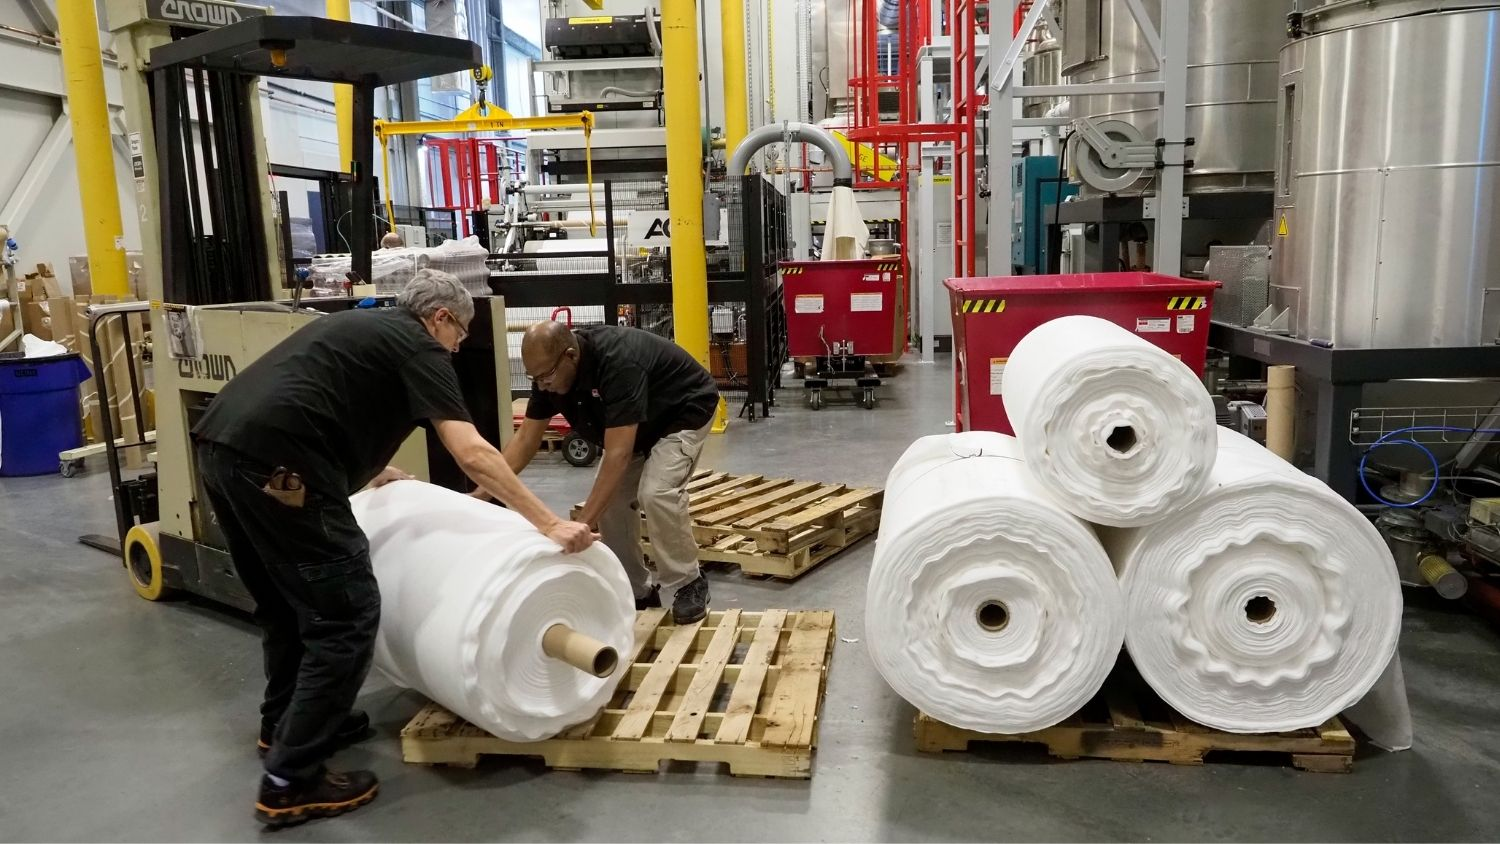 NWI is dedicating its meltblown and spunbond nonwoven making facilities and expertise to produce specially designed fabrics that can be delivered to USA manufacturers to assemble facemasks.